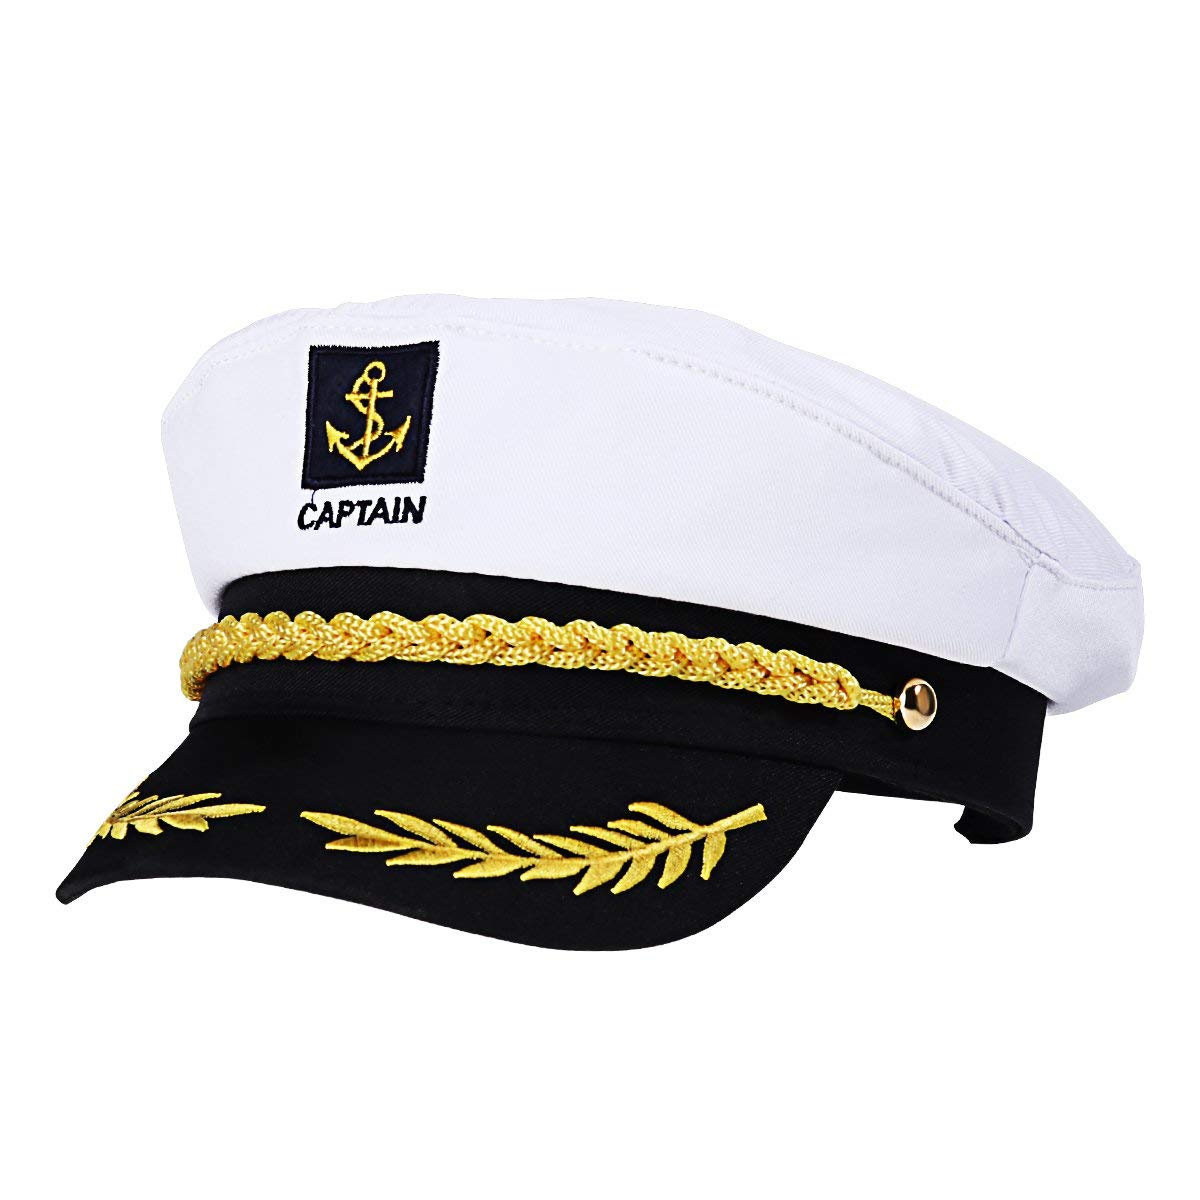 94cc59df4fce3 BESTOYARD Sailor Captain Hat Cap Yacht Party Hats Navy Marine Adult Admiral  Sailor Costume Accessories(White) by BESTOYARD - Shop Online for Toys in  New ...